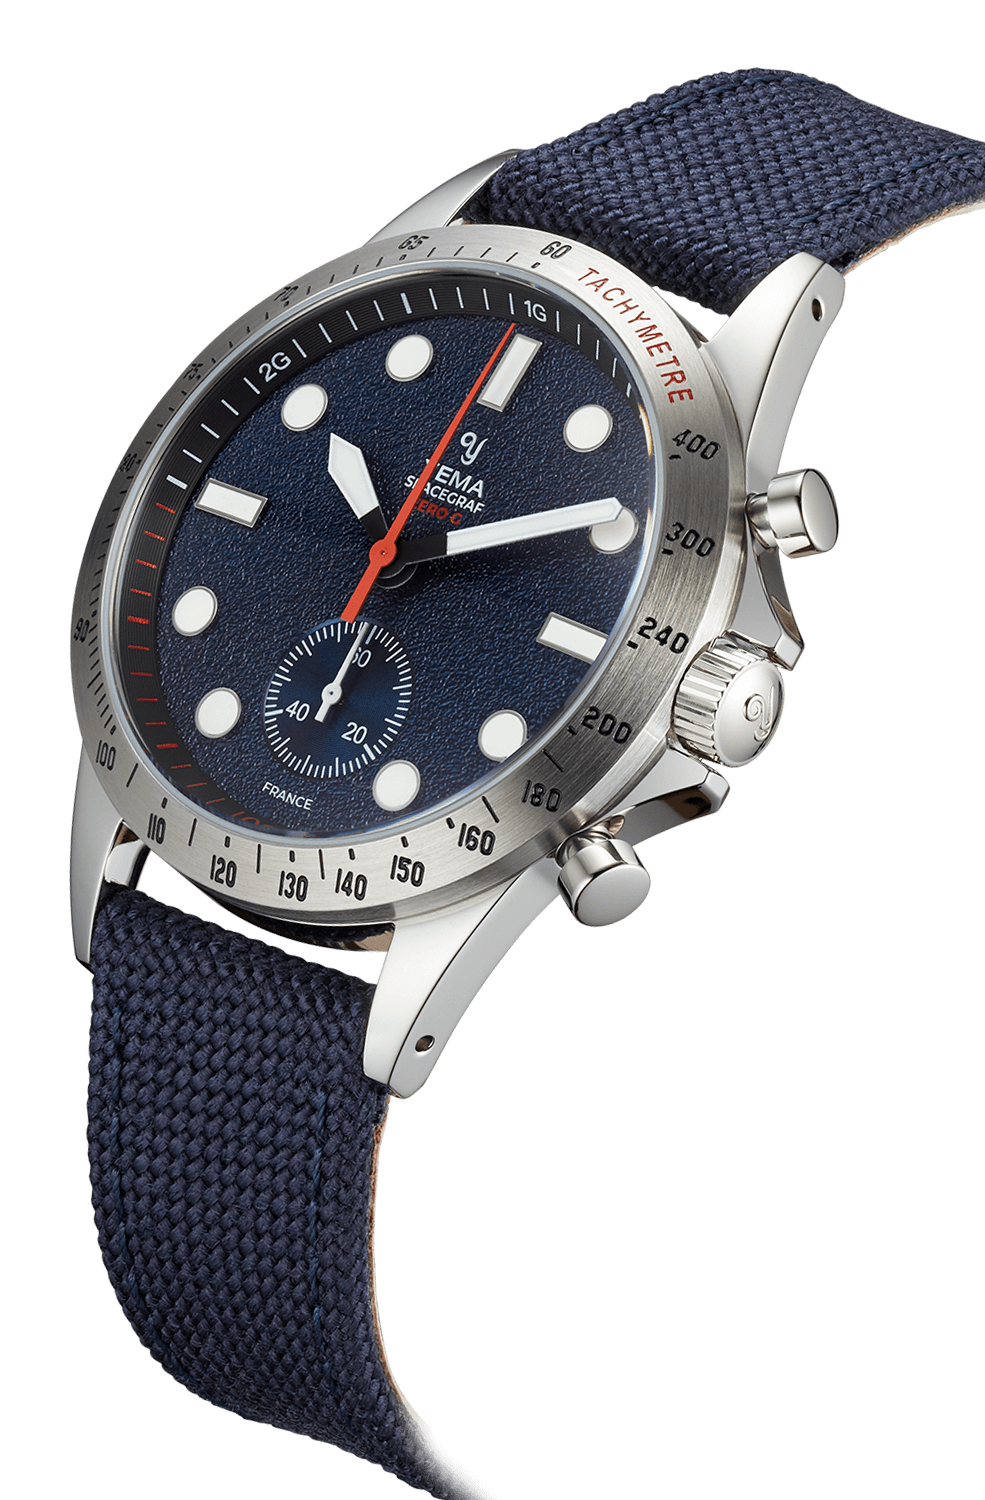 Montre YEMA Spacegraf Zero G Steel Blue. Index blancs, bracelet tissu bleu marine.